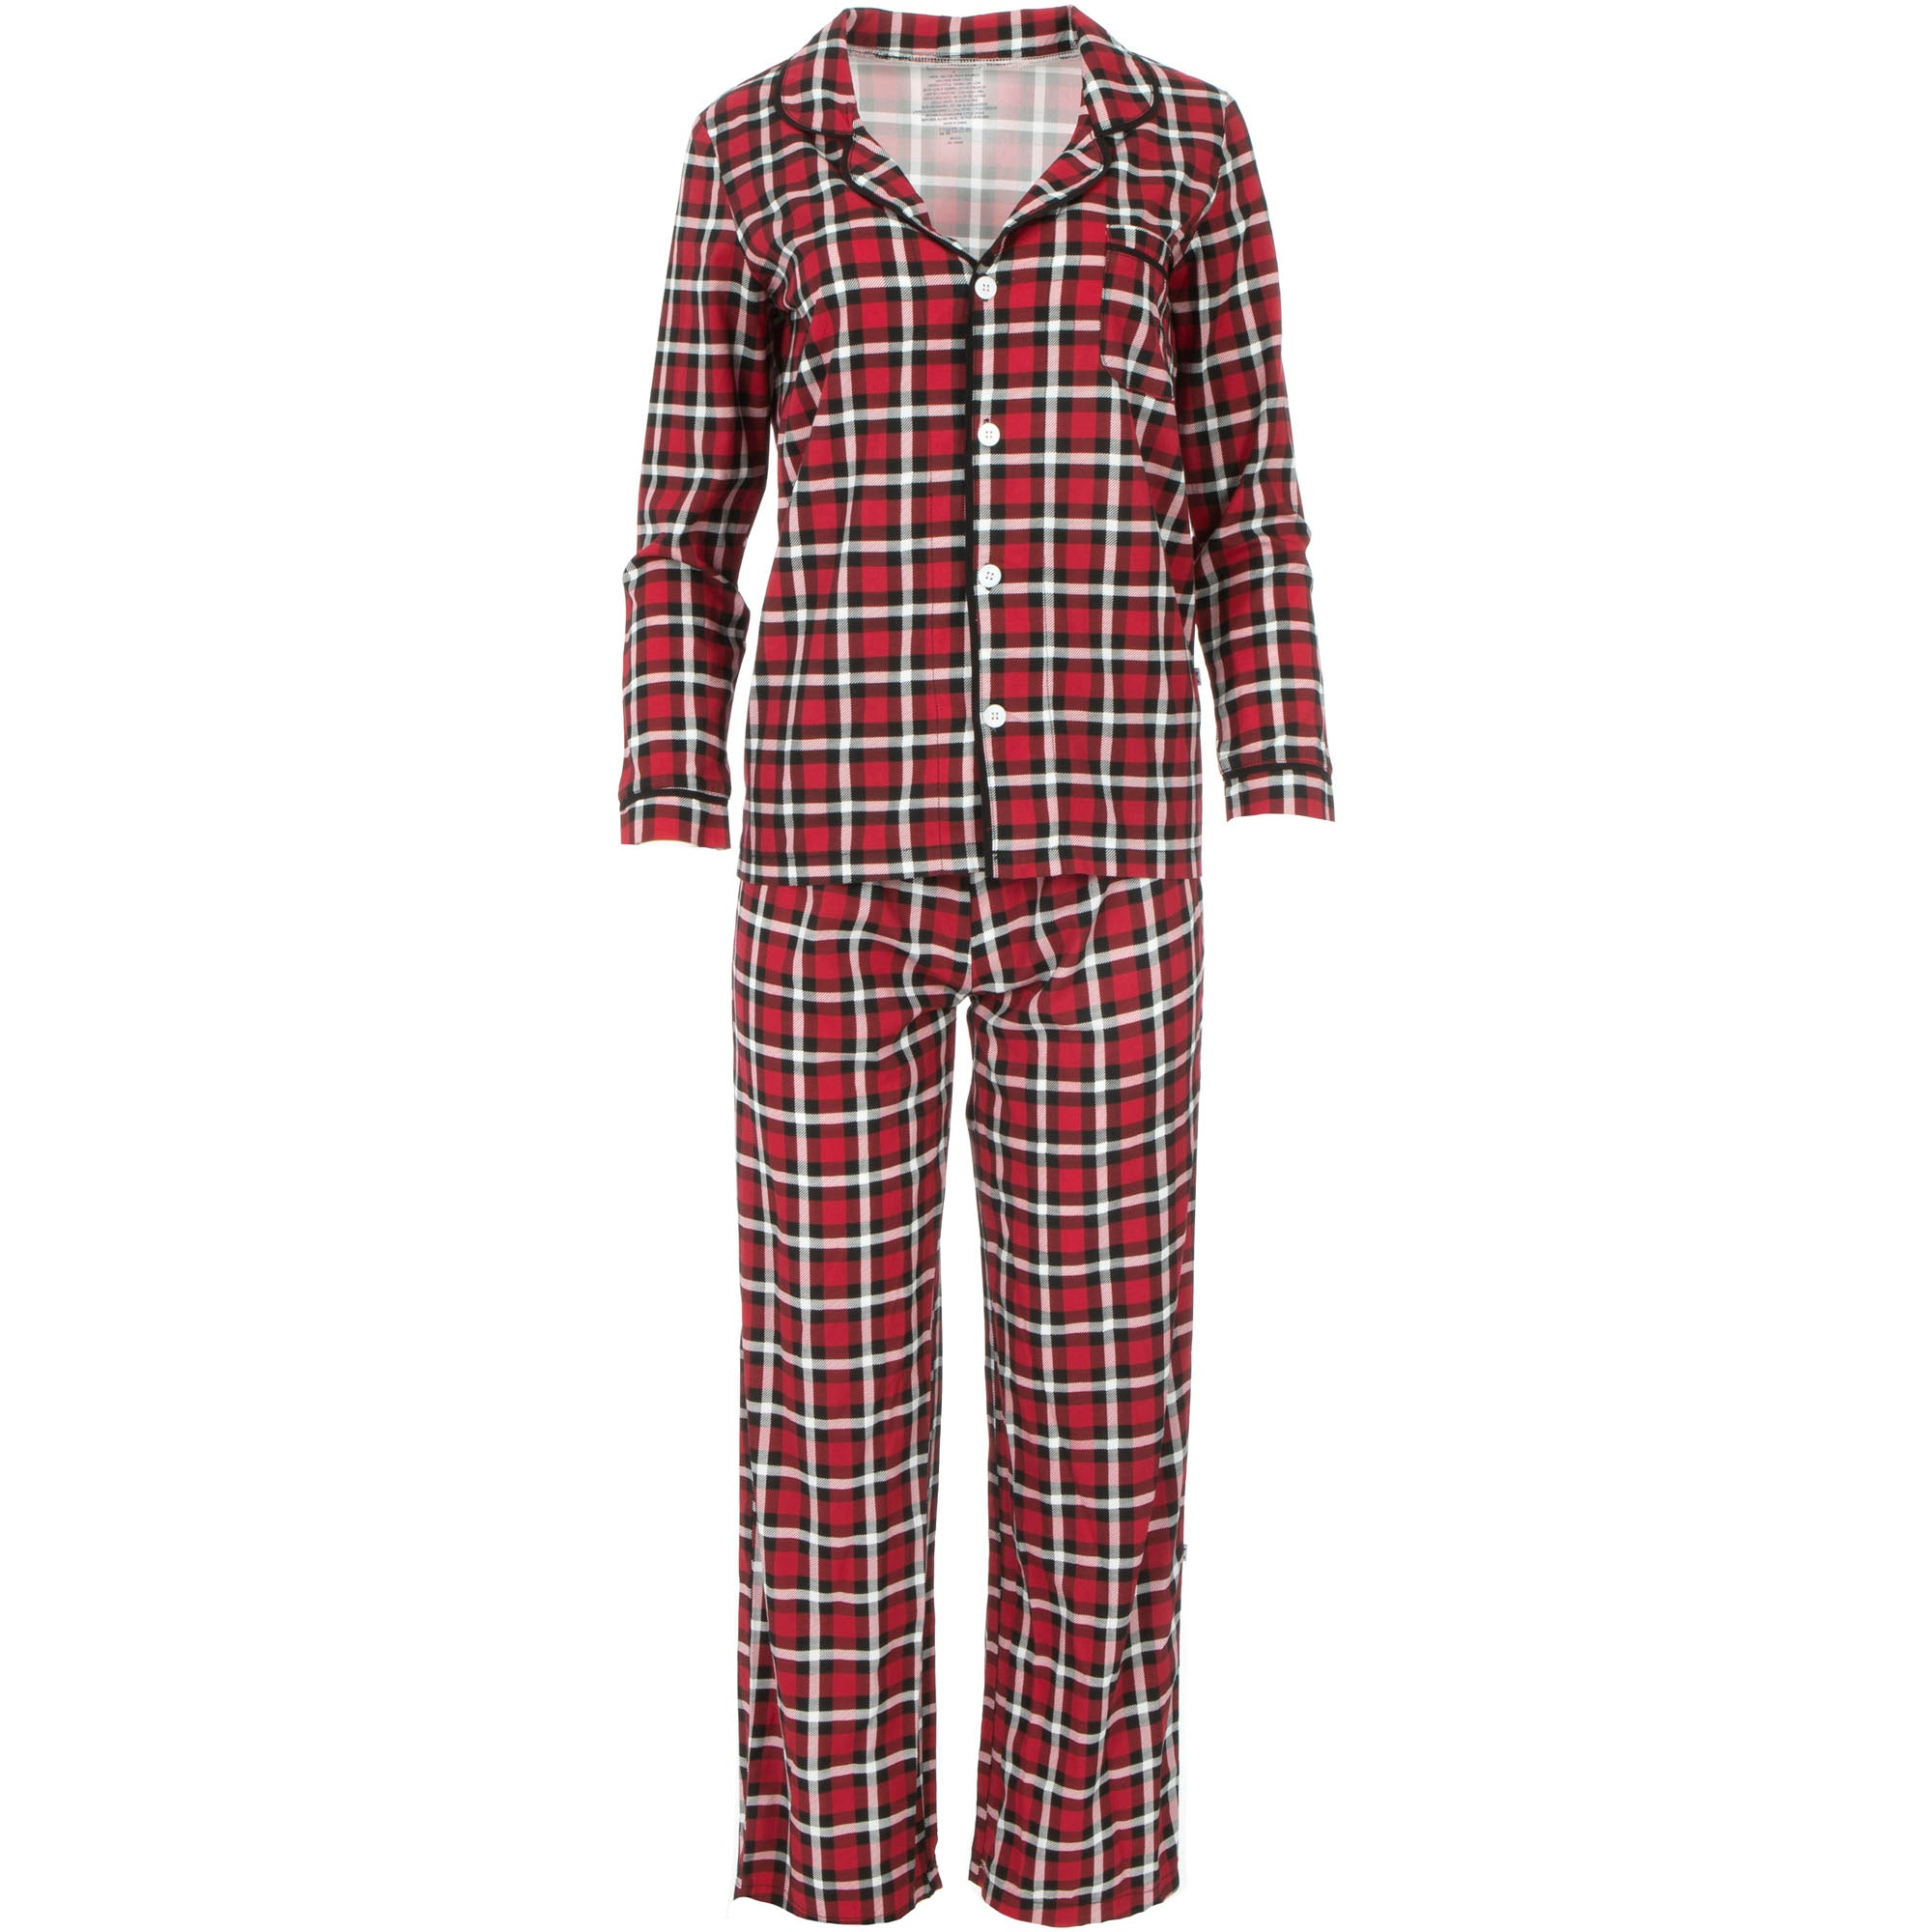 KicKee Pants Womens Collared Pajama Set - Crimson 2020 Holiday Plaid